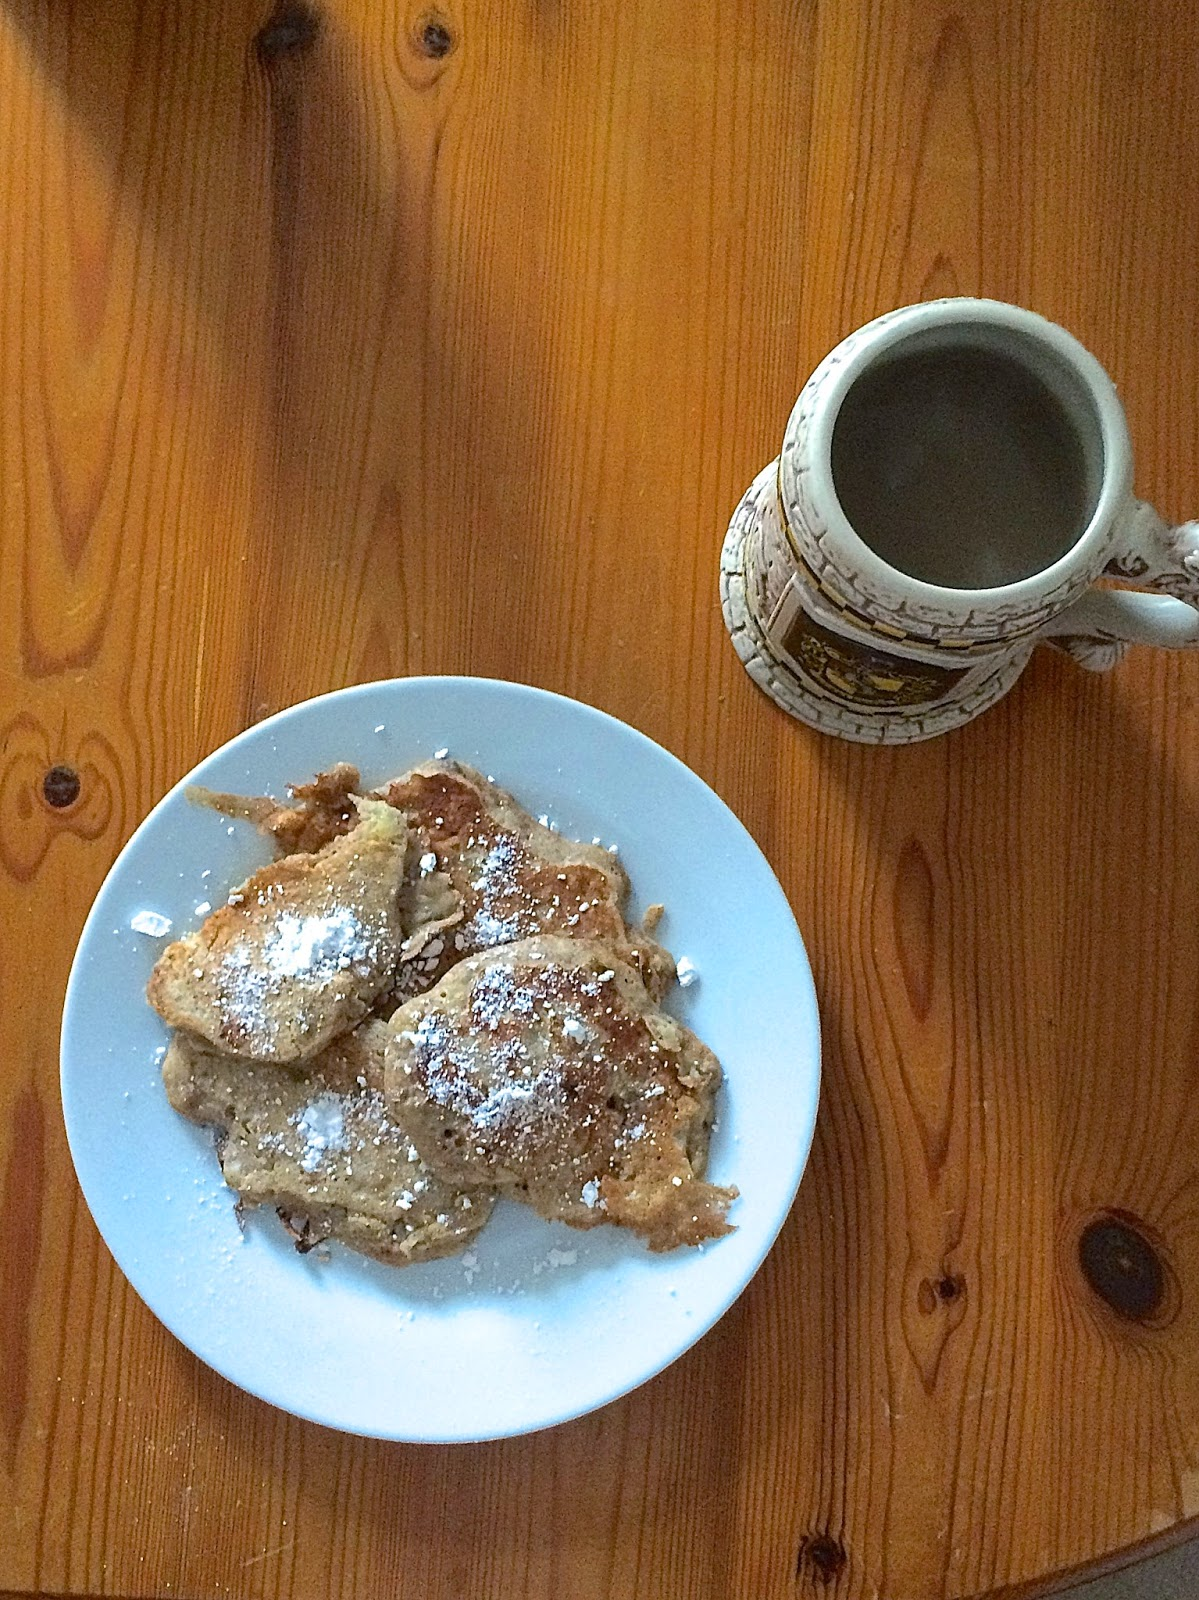 Recipe: How to Make Banana Fritters